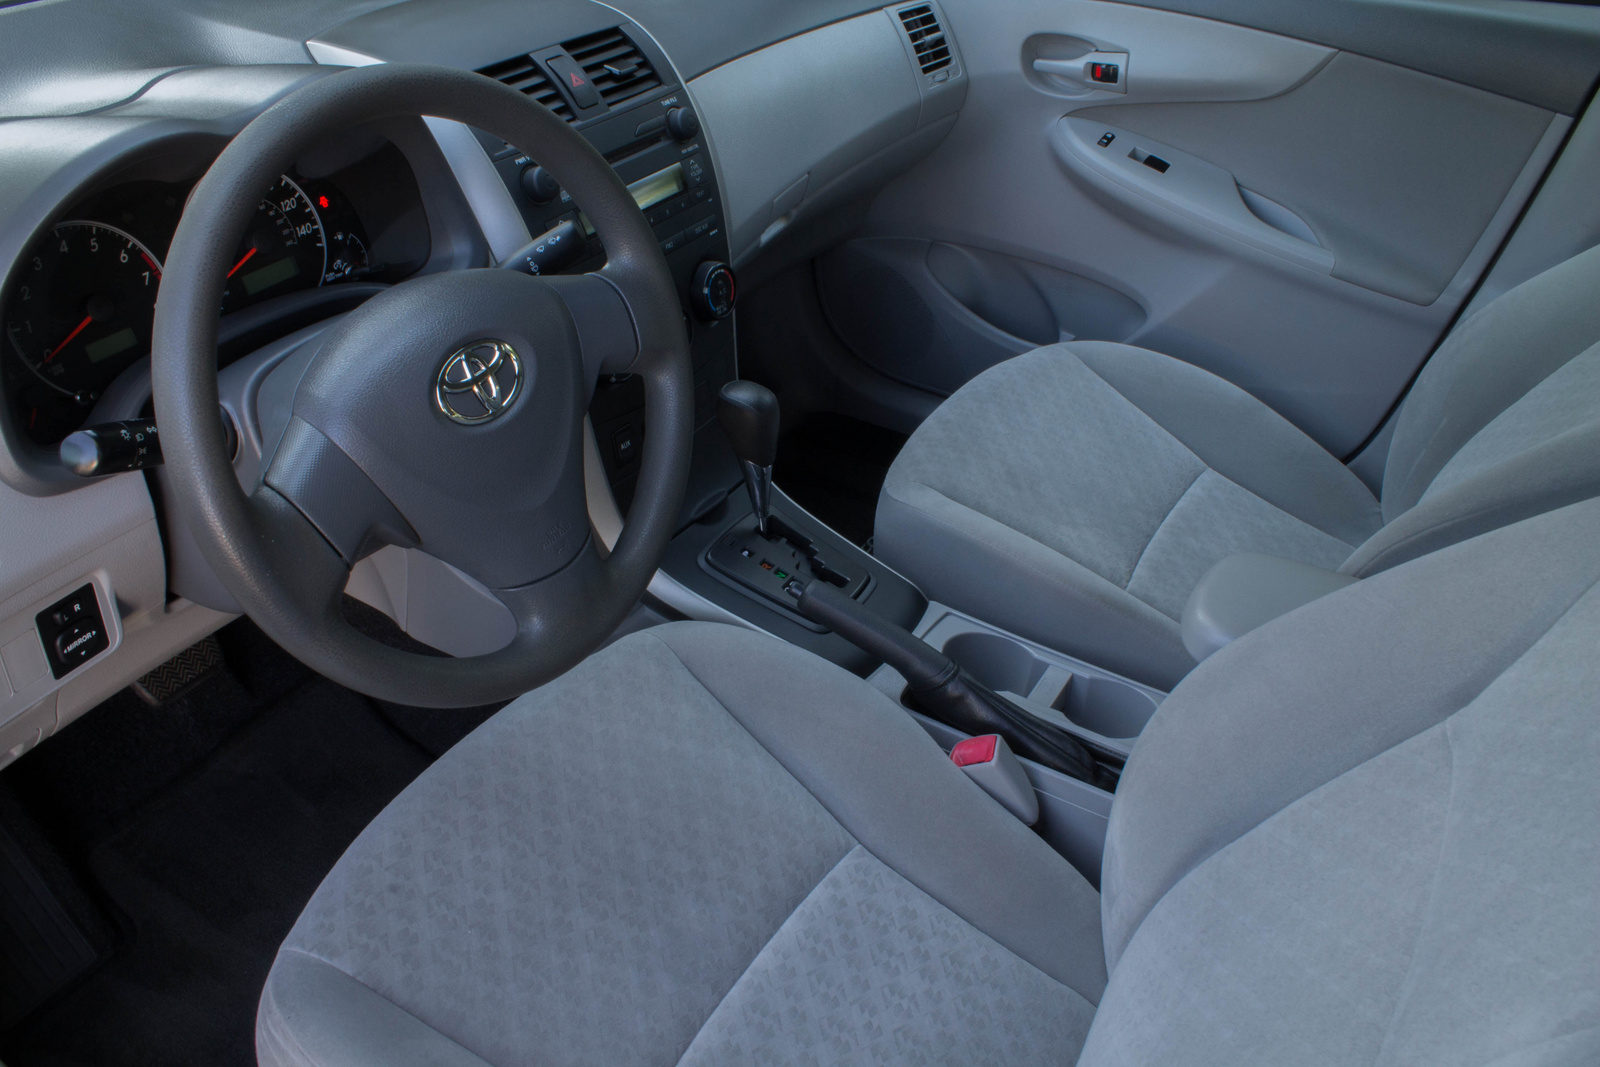 2009 Toyota Corolla Interior 2017 2018 Best Cars Reviews